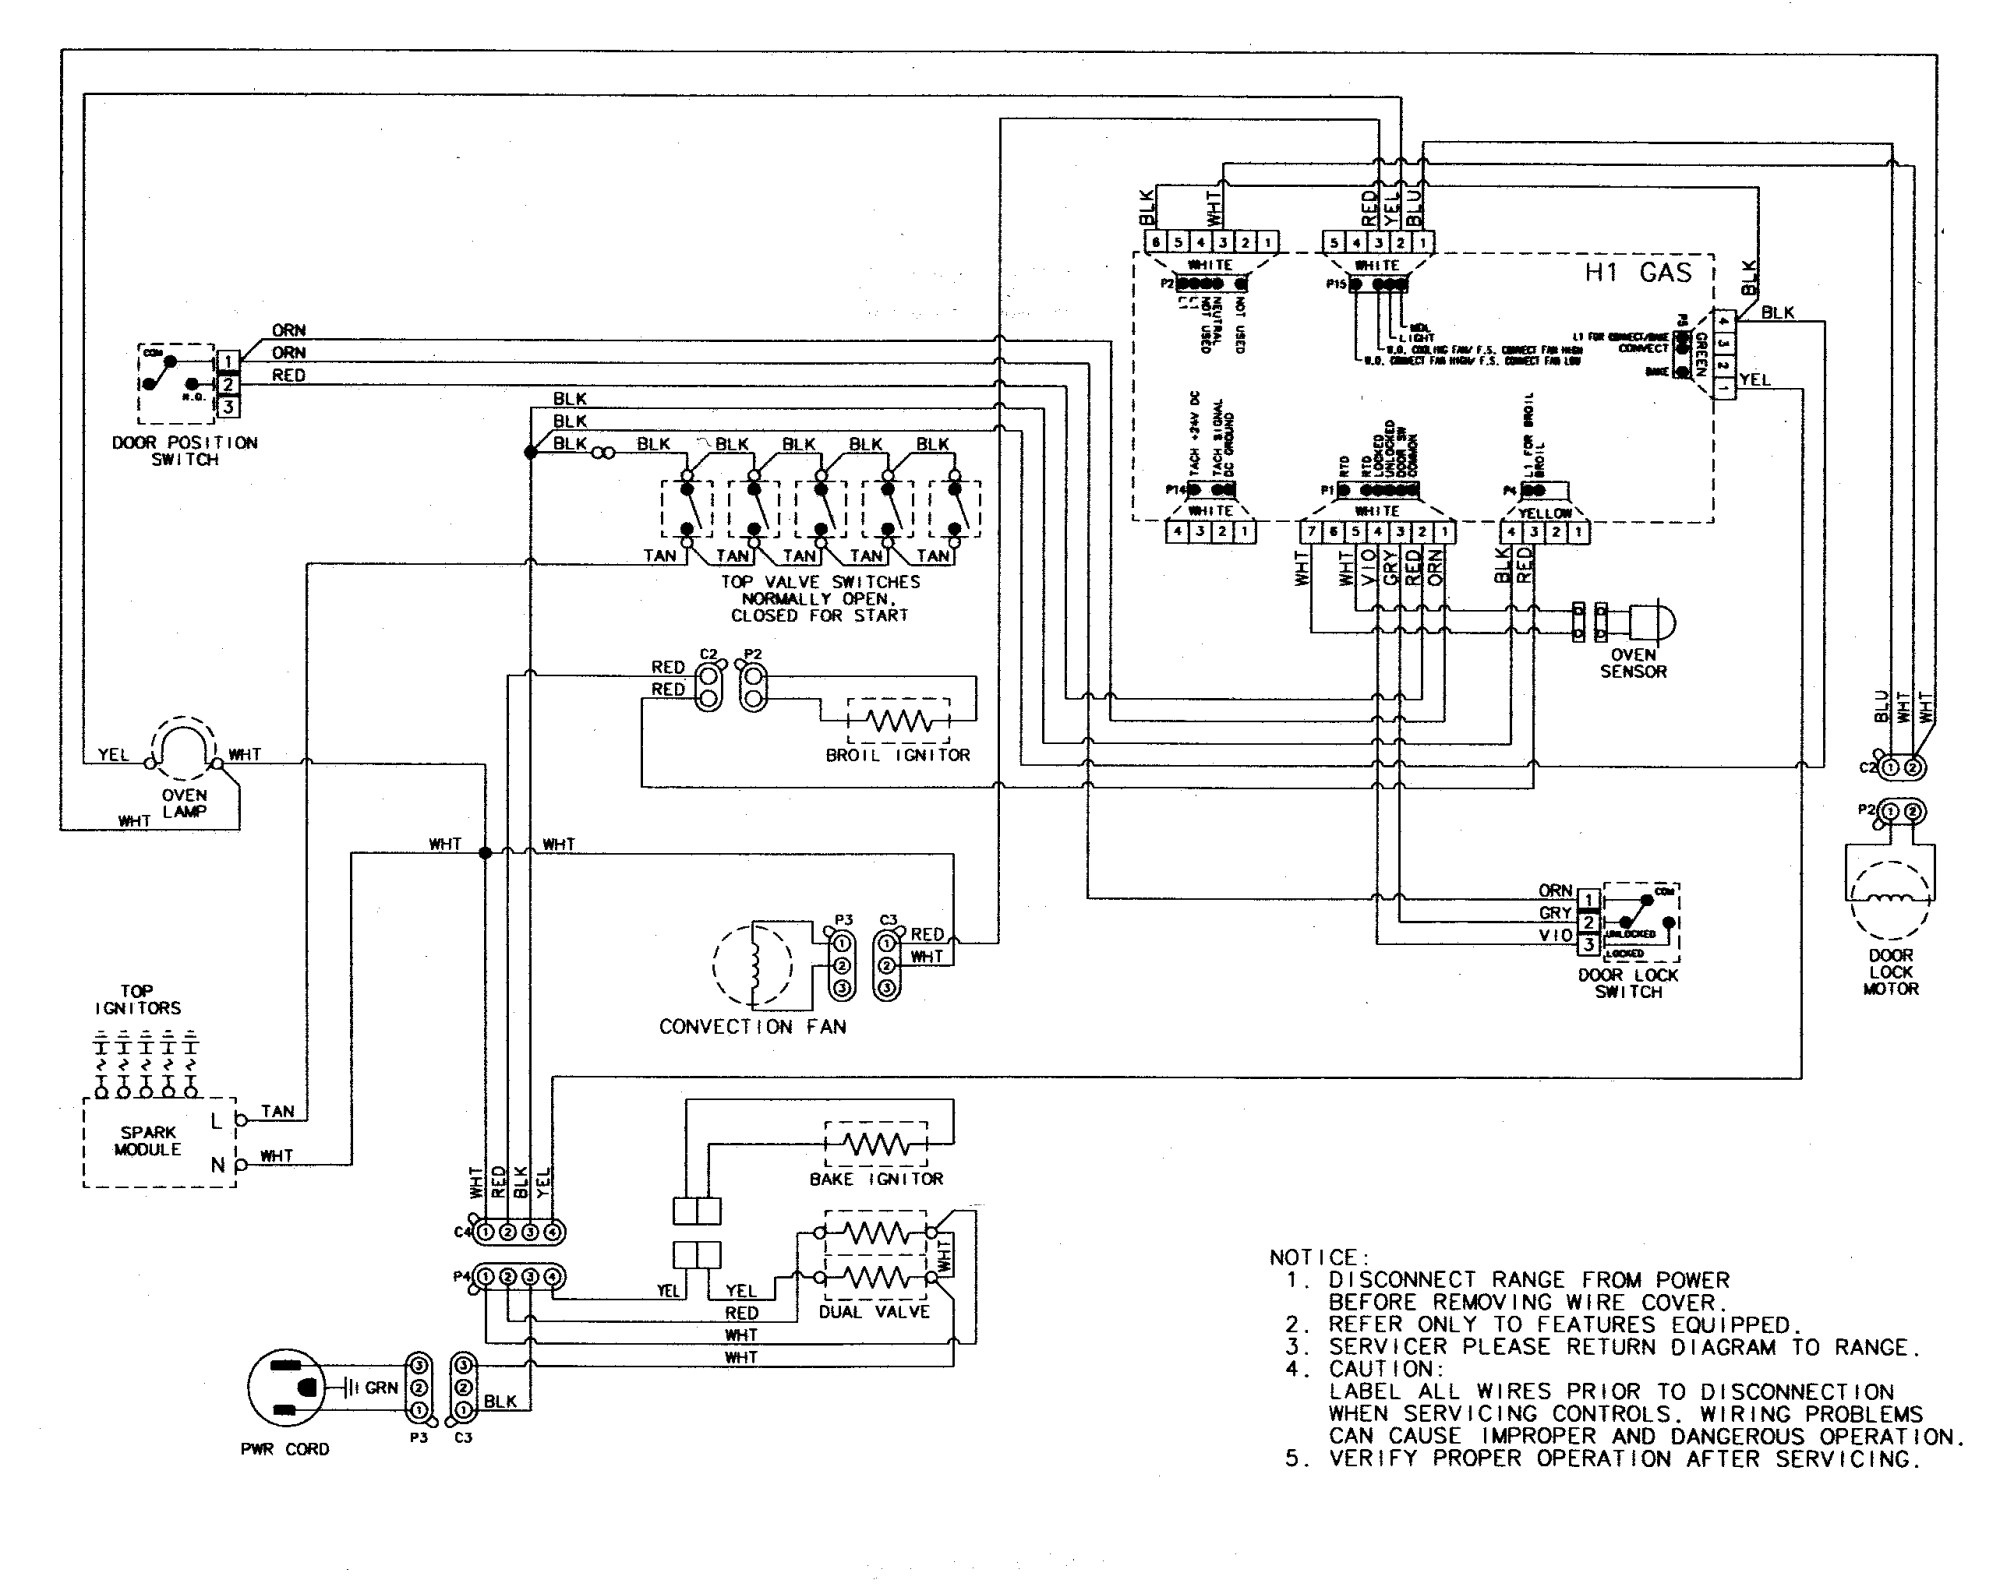 hight resolution of haier dryer wiring diagram wiring diagram explained foscam wiring diagram haier dryer wiring diagram wiring diagram